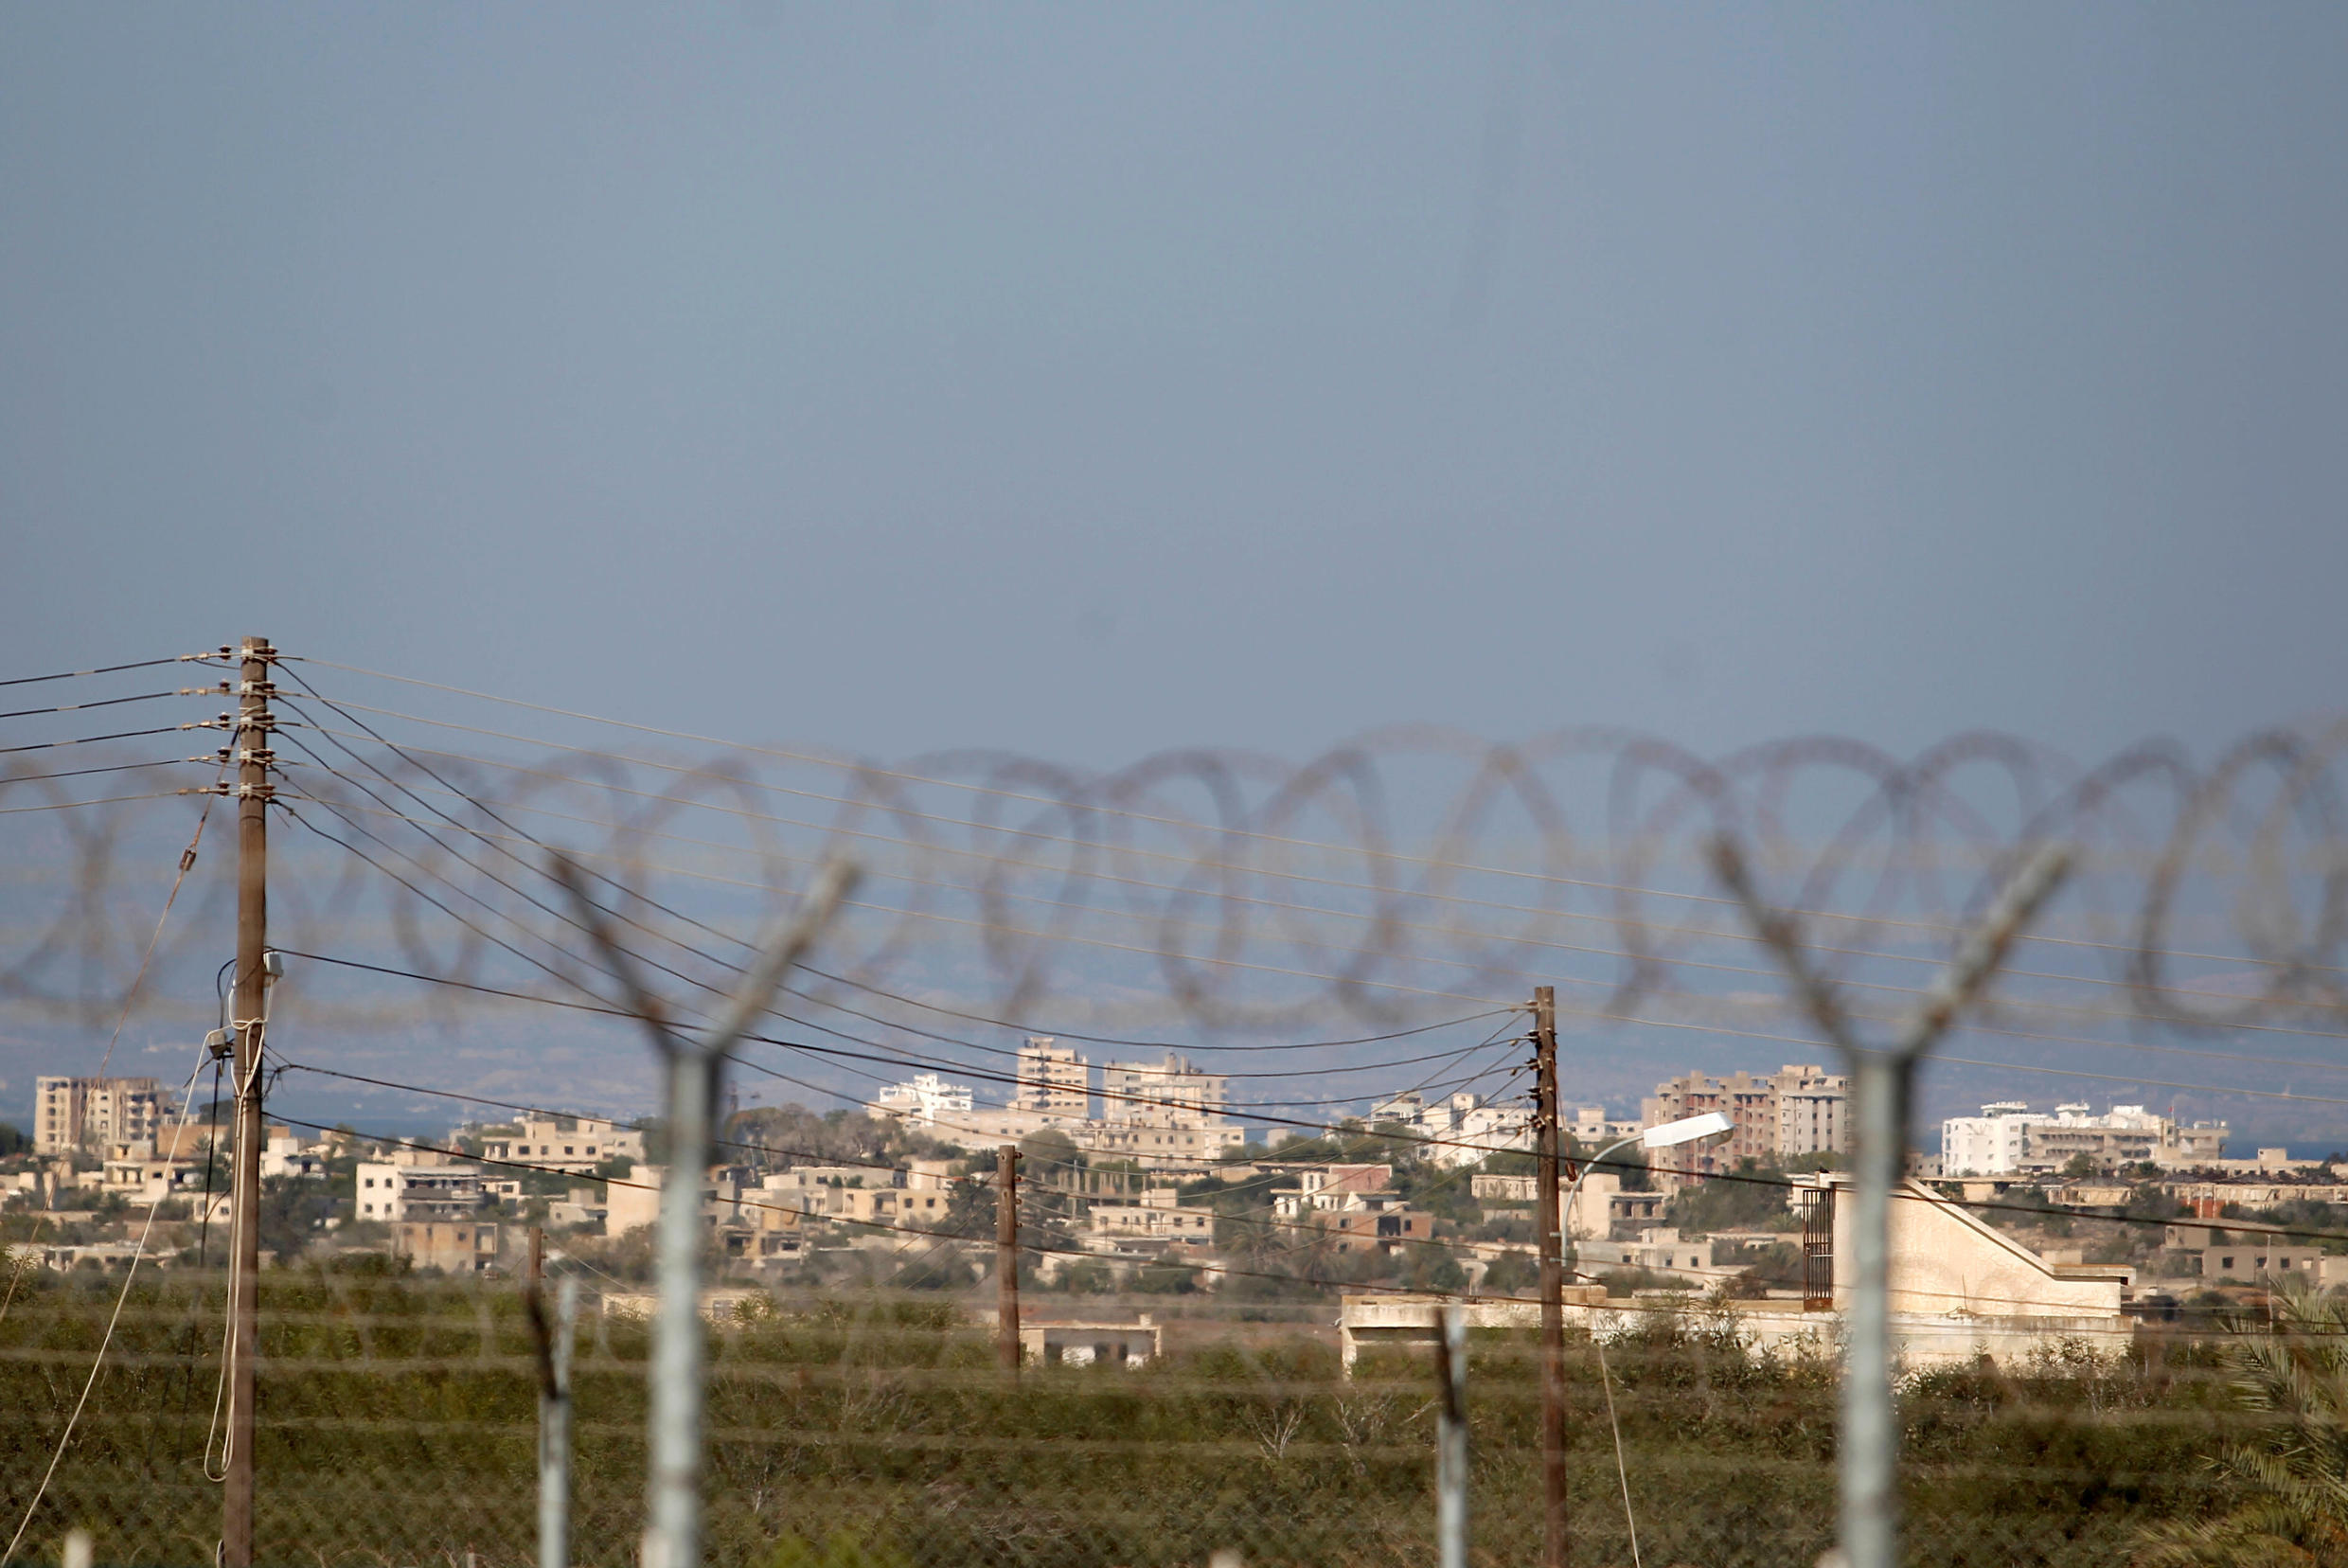 The fenced-off area of Varosha, restricted by the Turkish military, is seen from the Dherinia checkpoint on a ceasefire line, Cyprus, November 12, 2018.